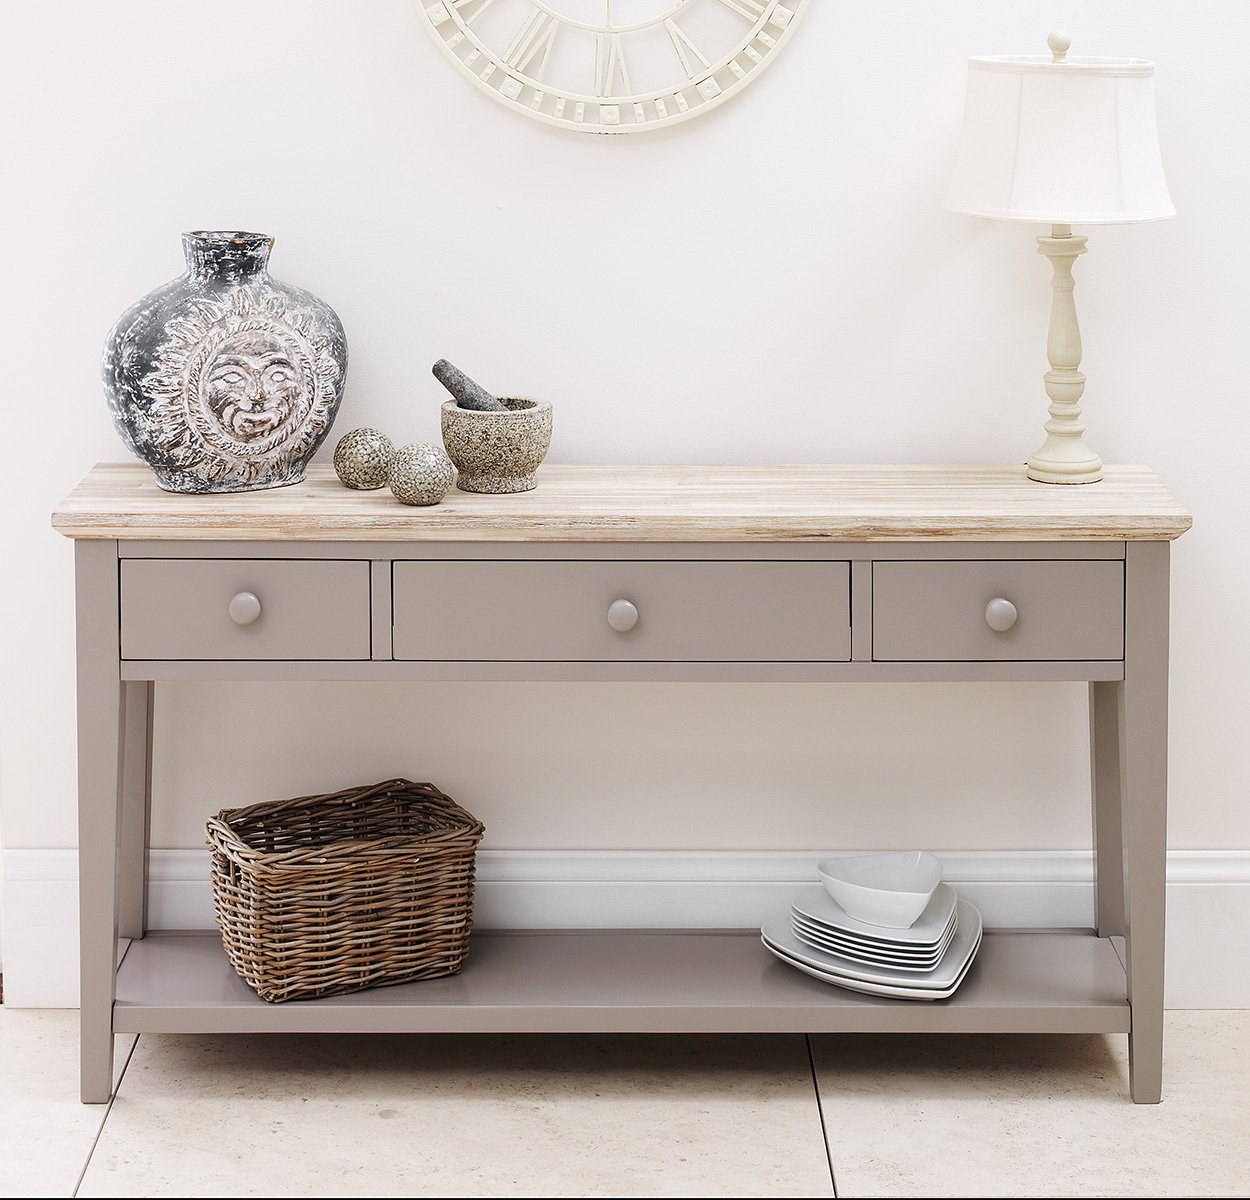 florence console table dove grey very sturdy console table with   - florence console table dove grey very sturdy console table with  drawersshelf solid sides and back beautiful limed top finish amazoncoukkitchen